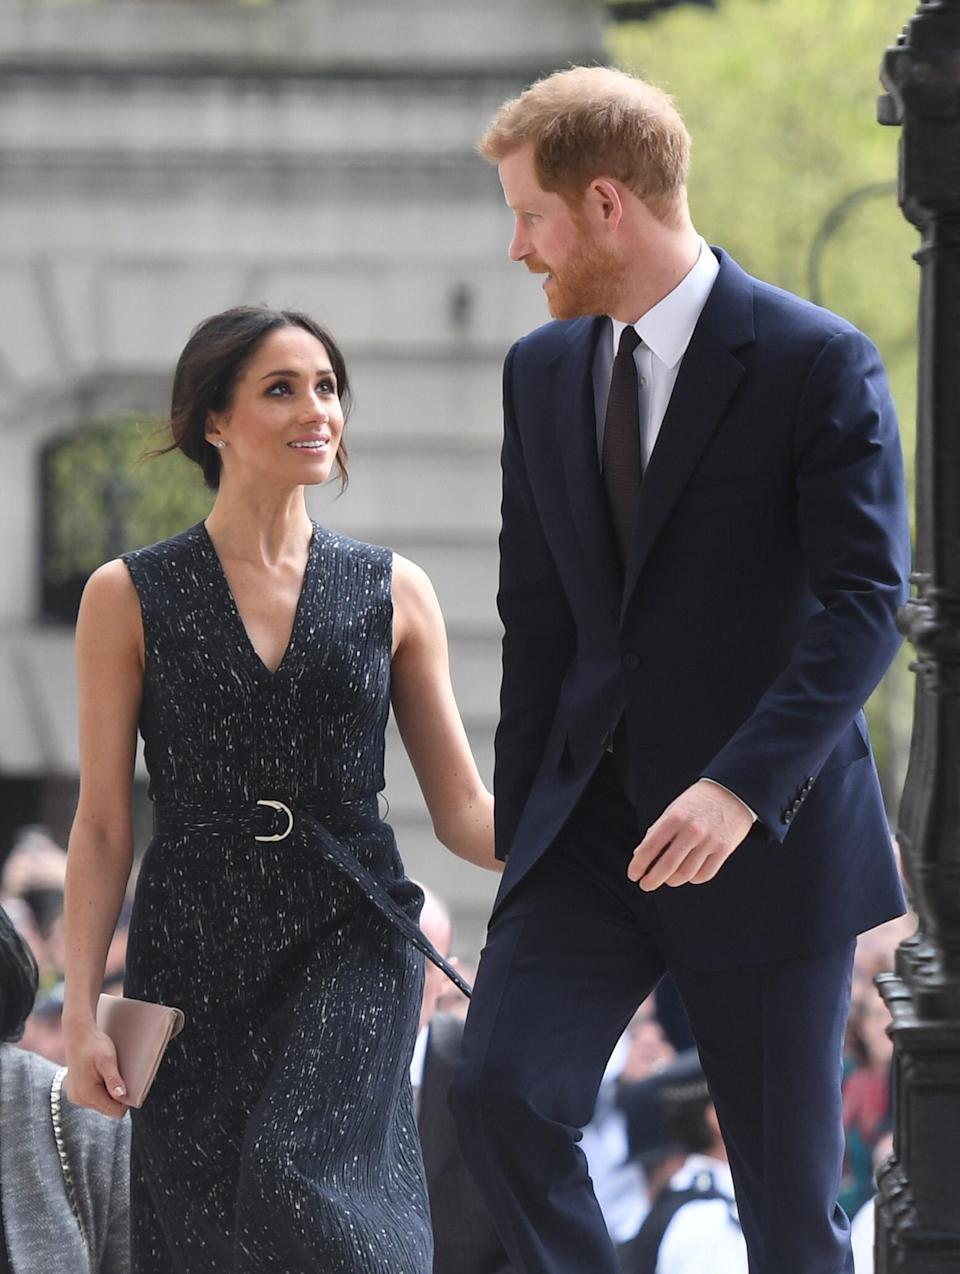 <p>Markle opted for traditional black while Prince Harry sported a navy suit for the solemn occasion. </p>